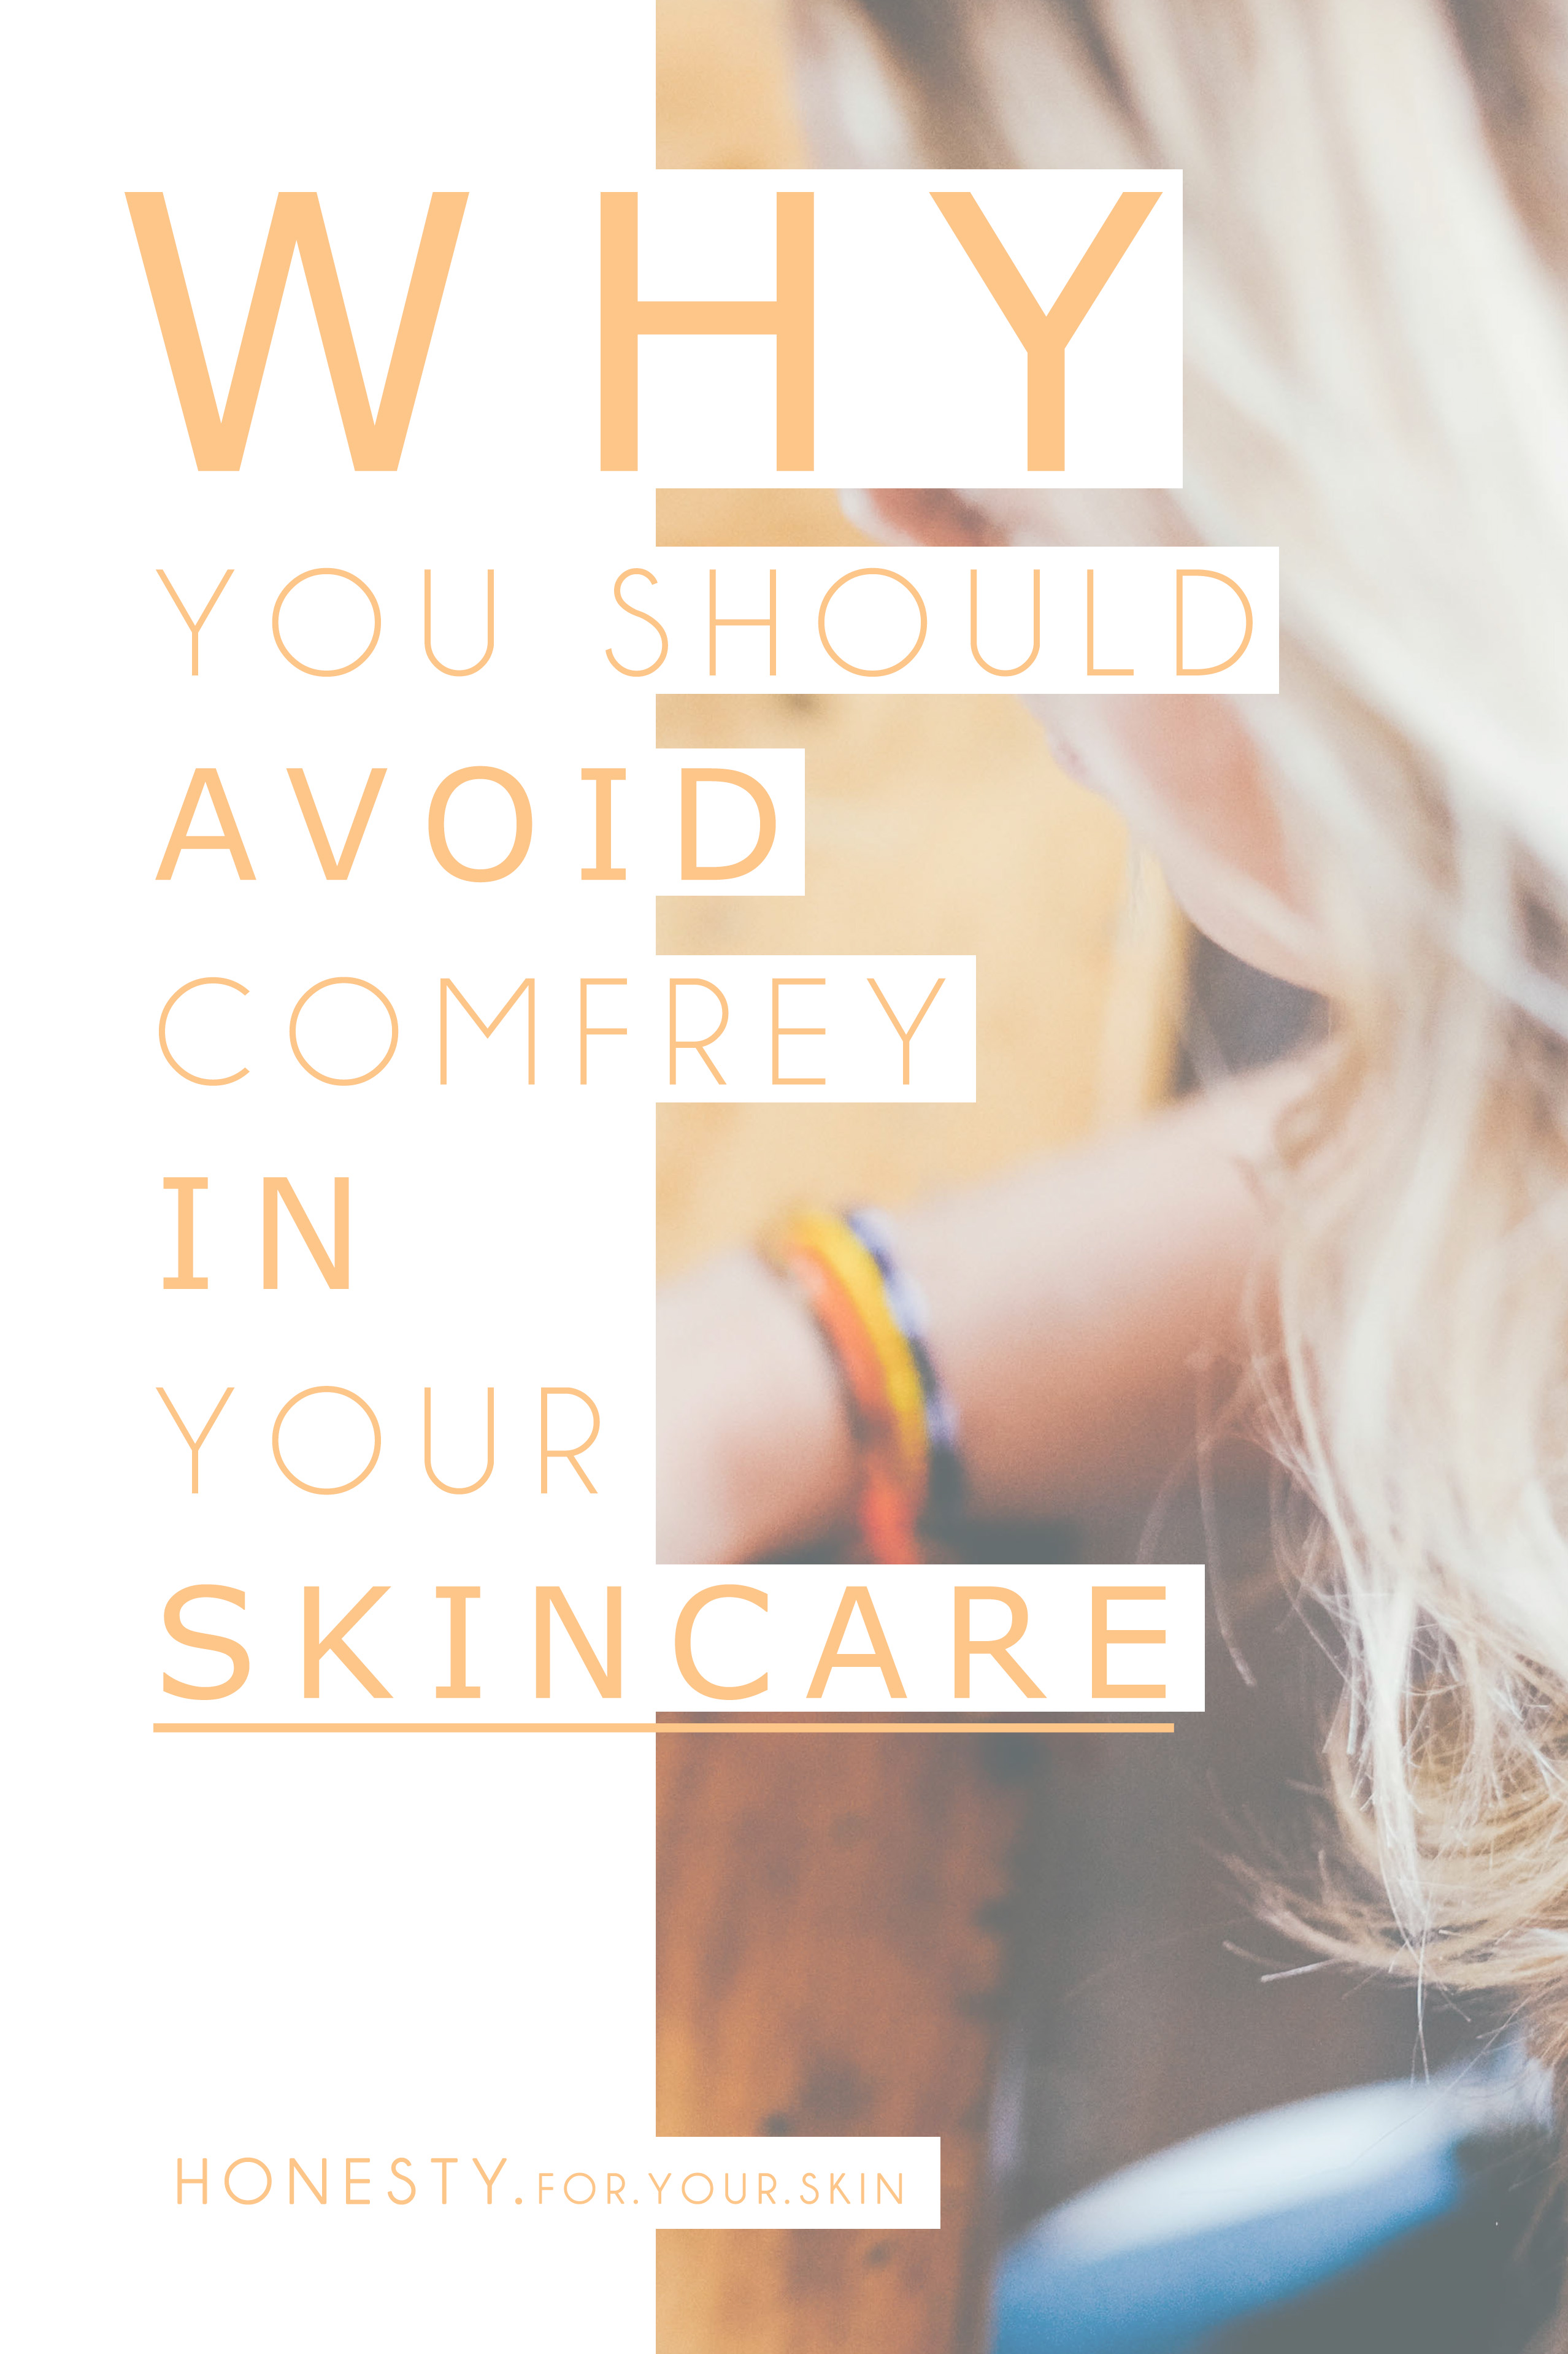 Comfrey is an ingredient you might find in YOUR skincare. Make sure you're clued up on it before you make the decision to use it! There's somthing you probabaly don't know about this skincare Ingredient!